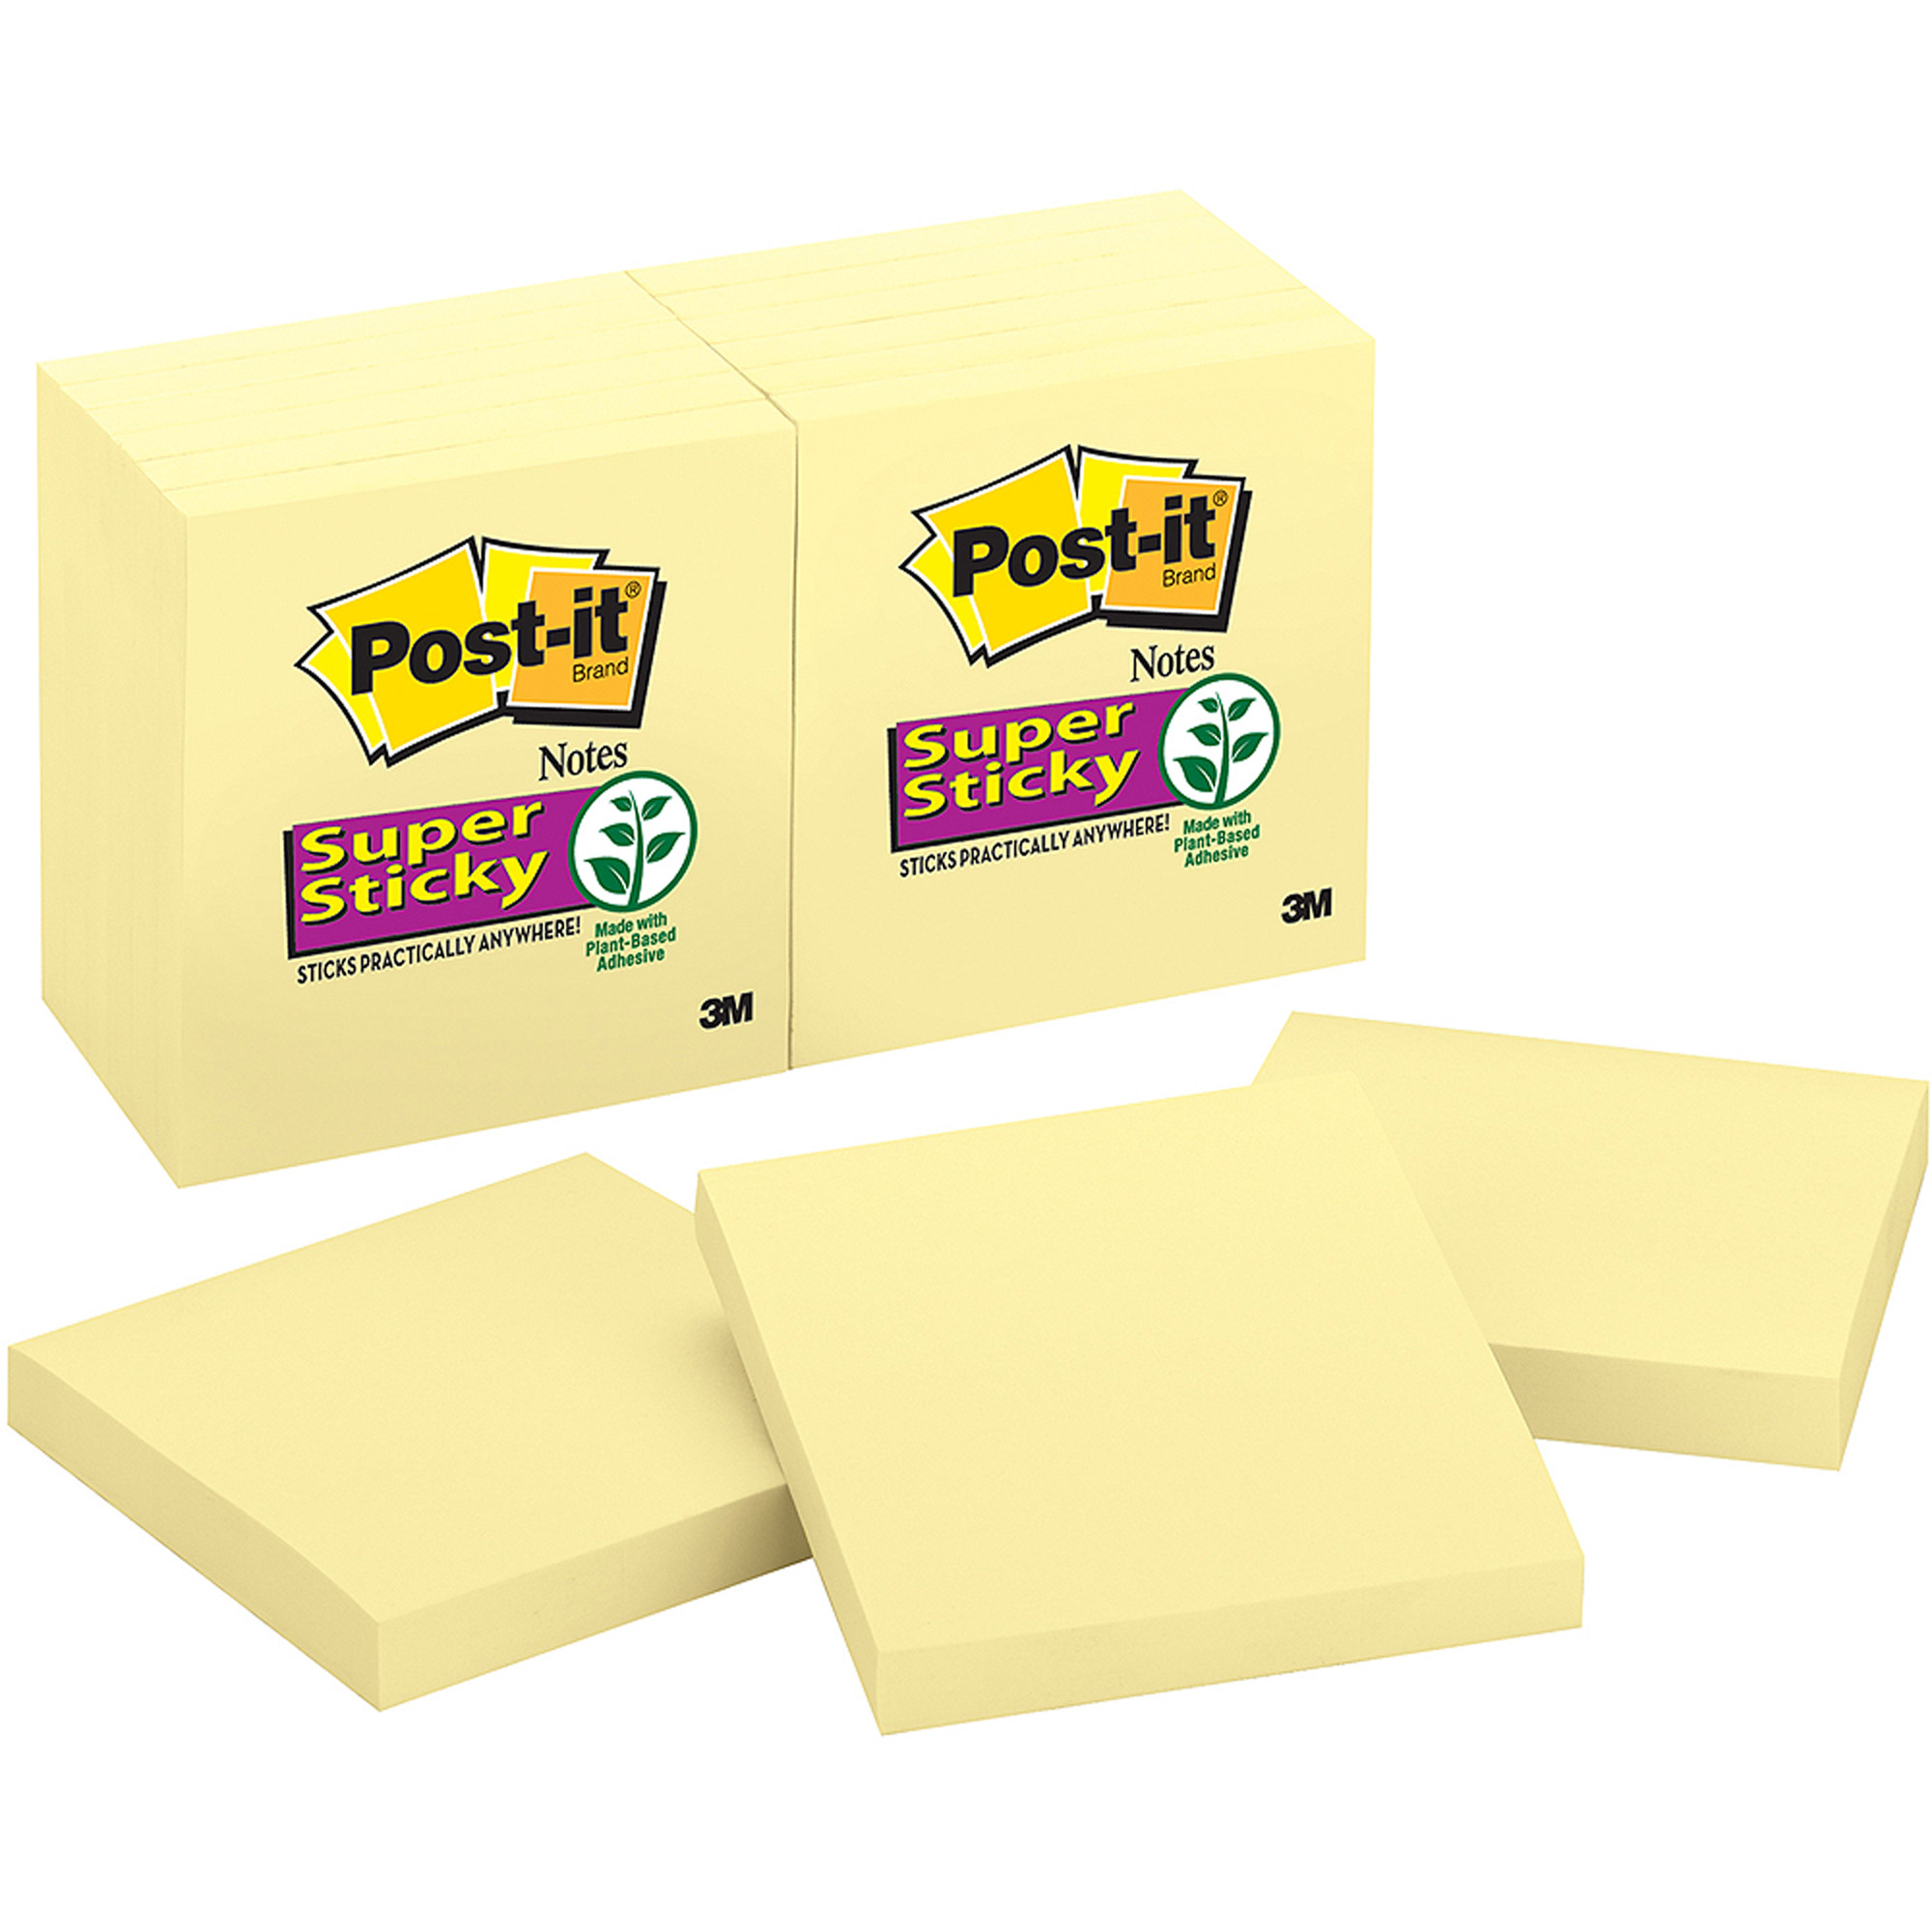 Post-it Super Sticky Notes, 3 in x 3 in, Canary Yellow, 12-Pack